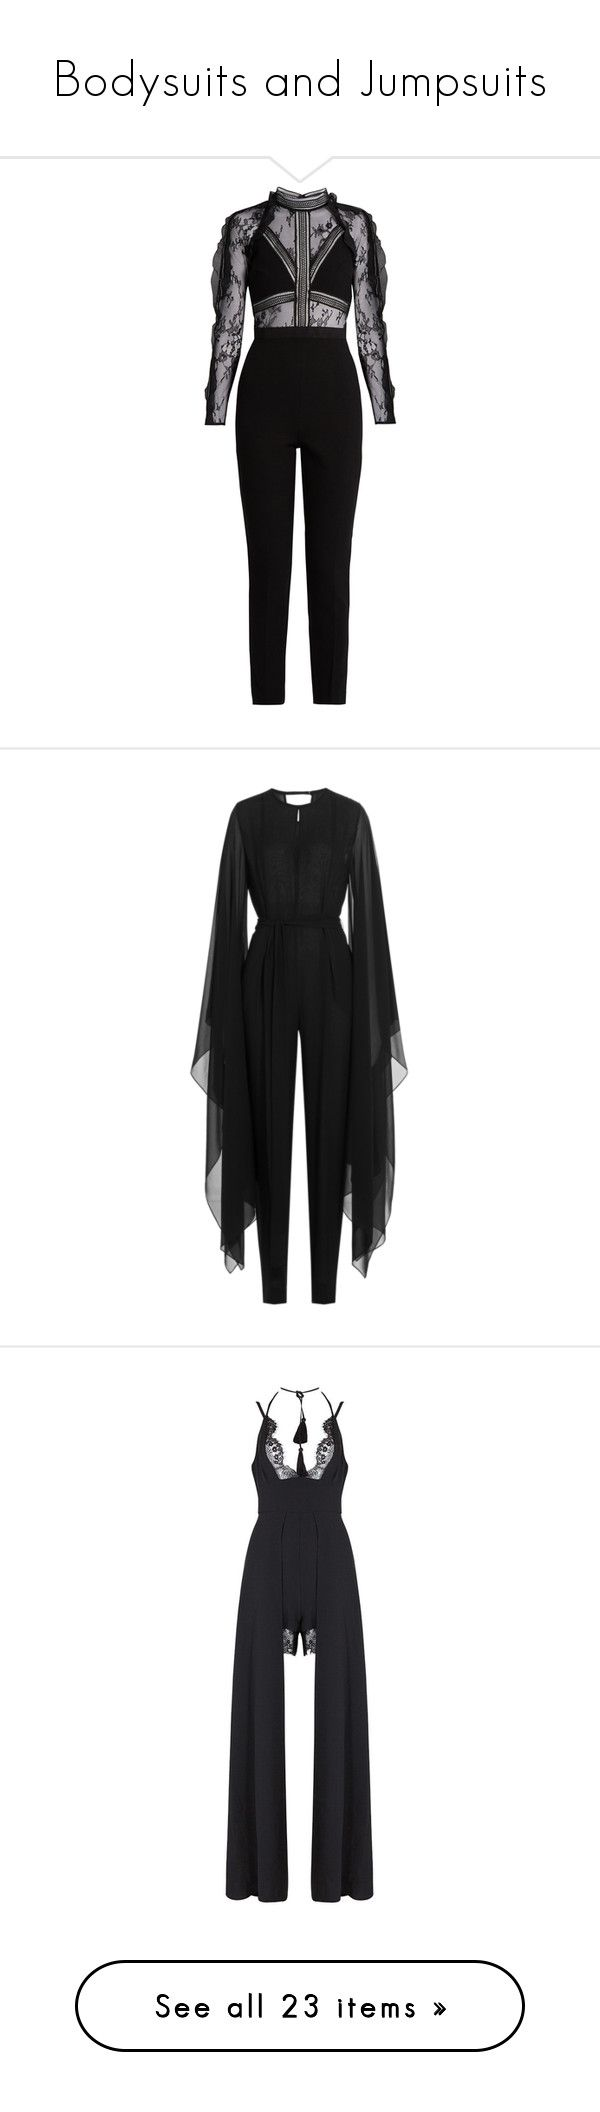 """Bodysuits and Jumpsuits"" by horror-hottie ❤ liked on Polyvore featuring jumpsuits, romper, black, special occasion jumpsuits, self portrait jumpsuit, slim leg jumpsuit, flower print romper, floral jumpsuit, dresses and rompers"